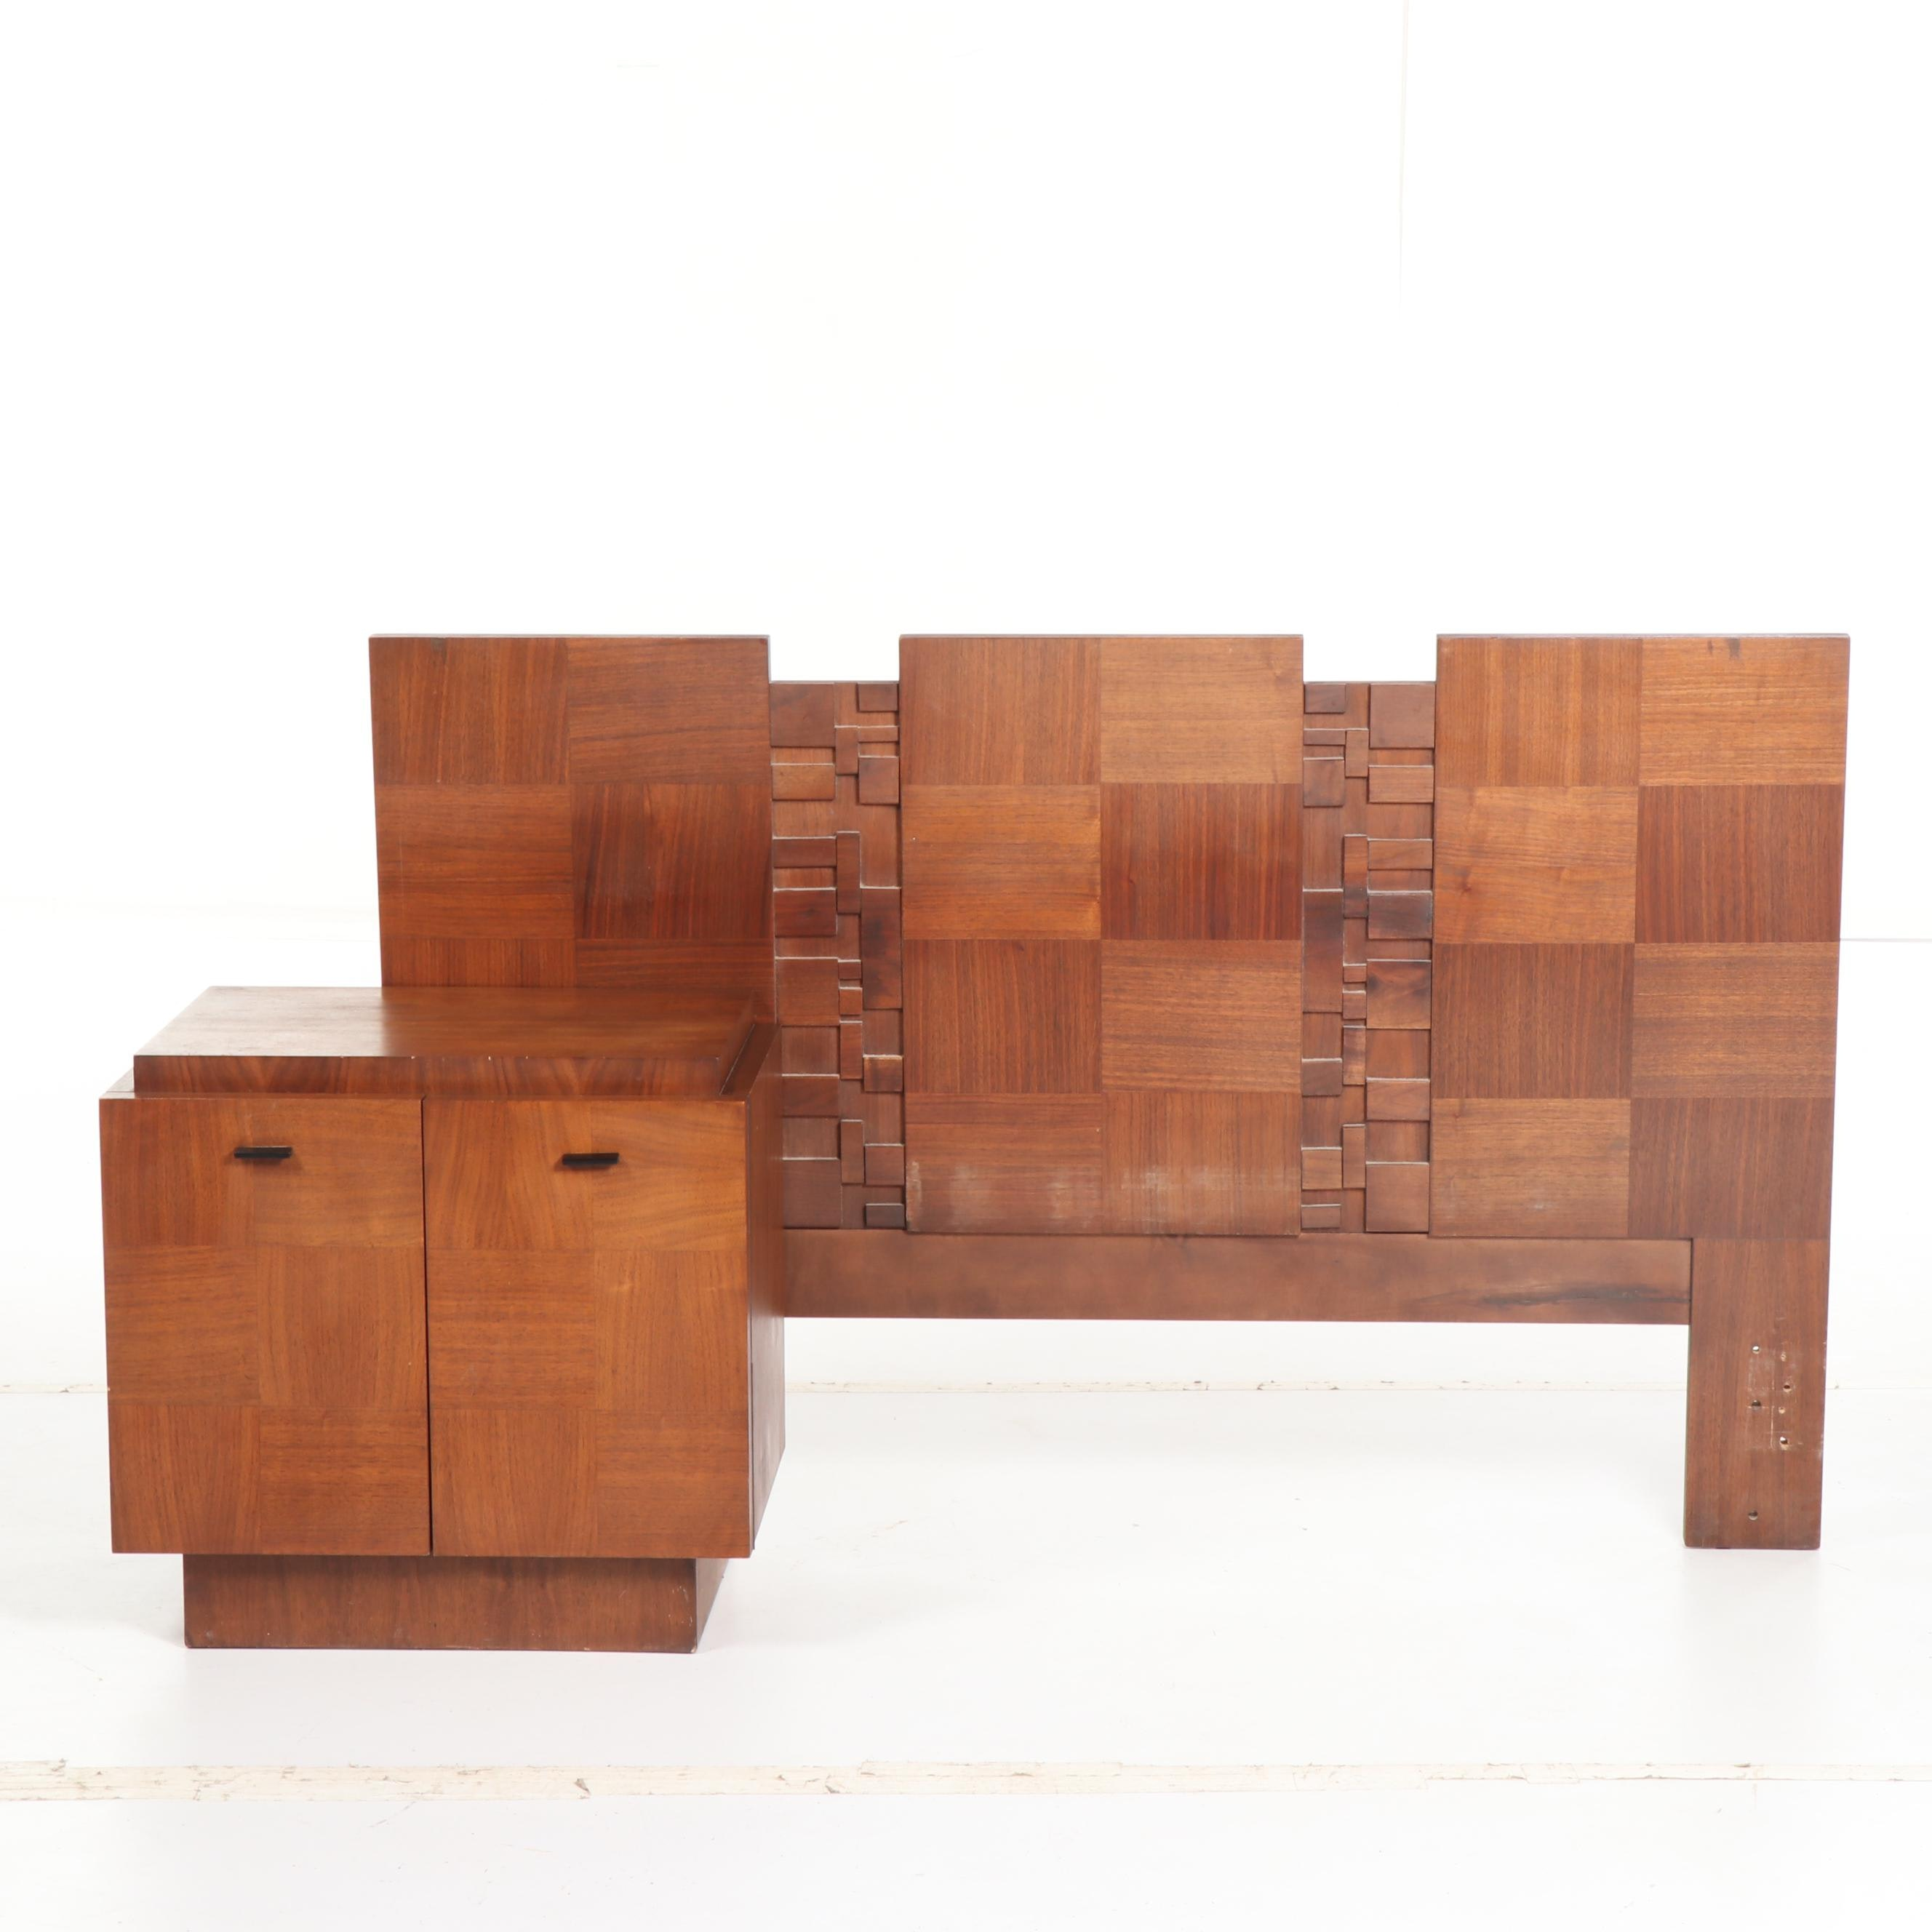 Brutalist Style Mixed Wood Headboard and Nightstand, Mid/Late 20th Century